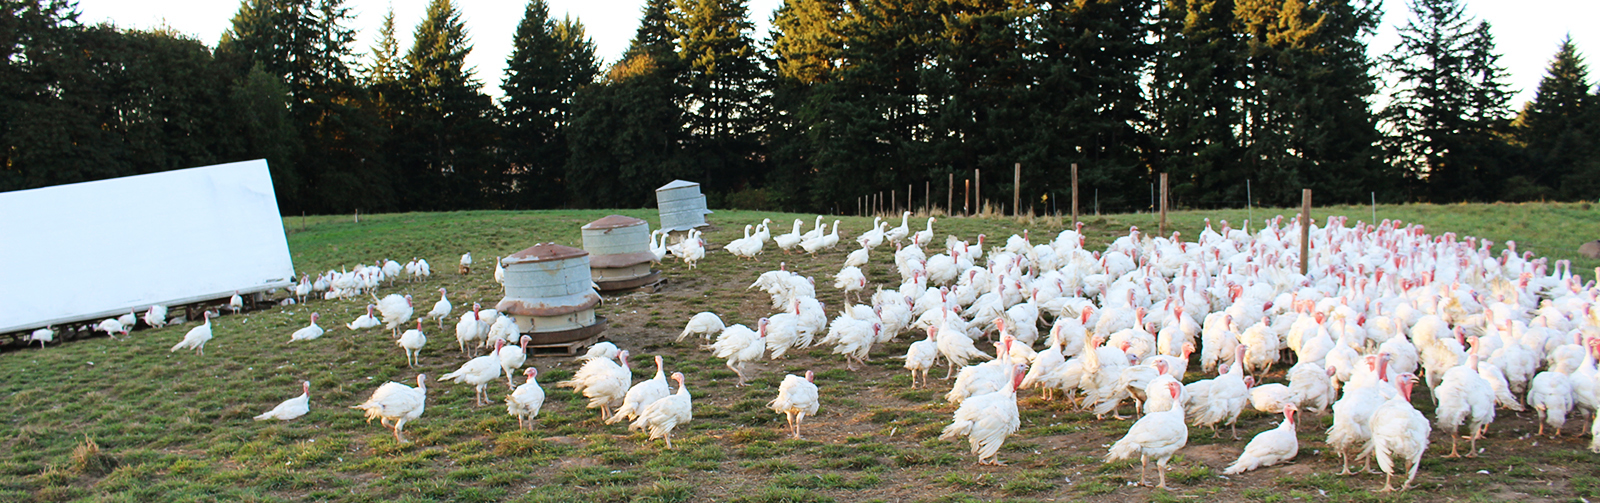 HP-Banner-Turkeys-Zoomed-Out